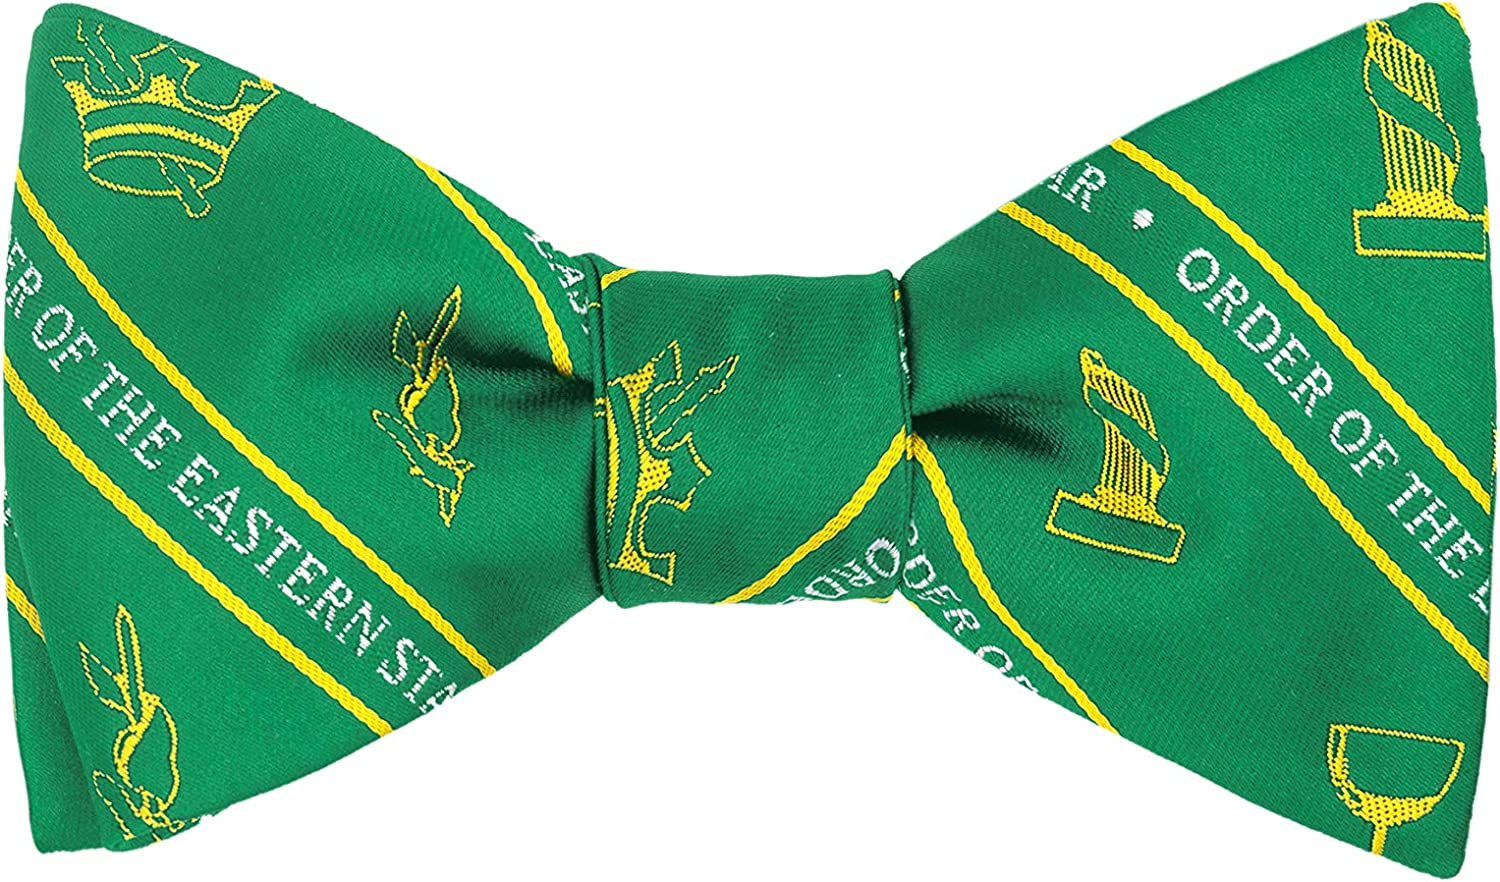 Order of the Eastern Star Bow Tie by Masonic Revival (Standard) - Green